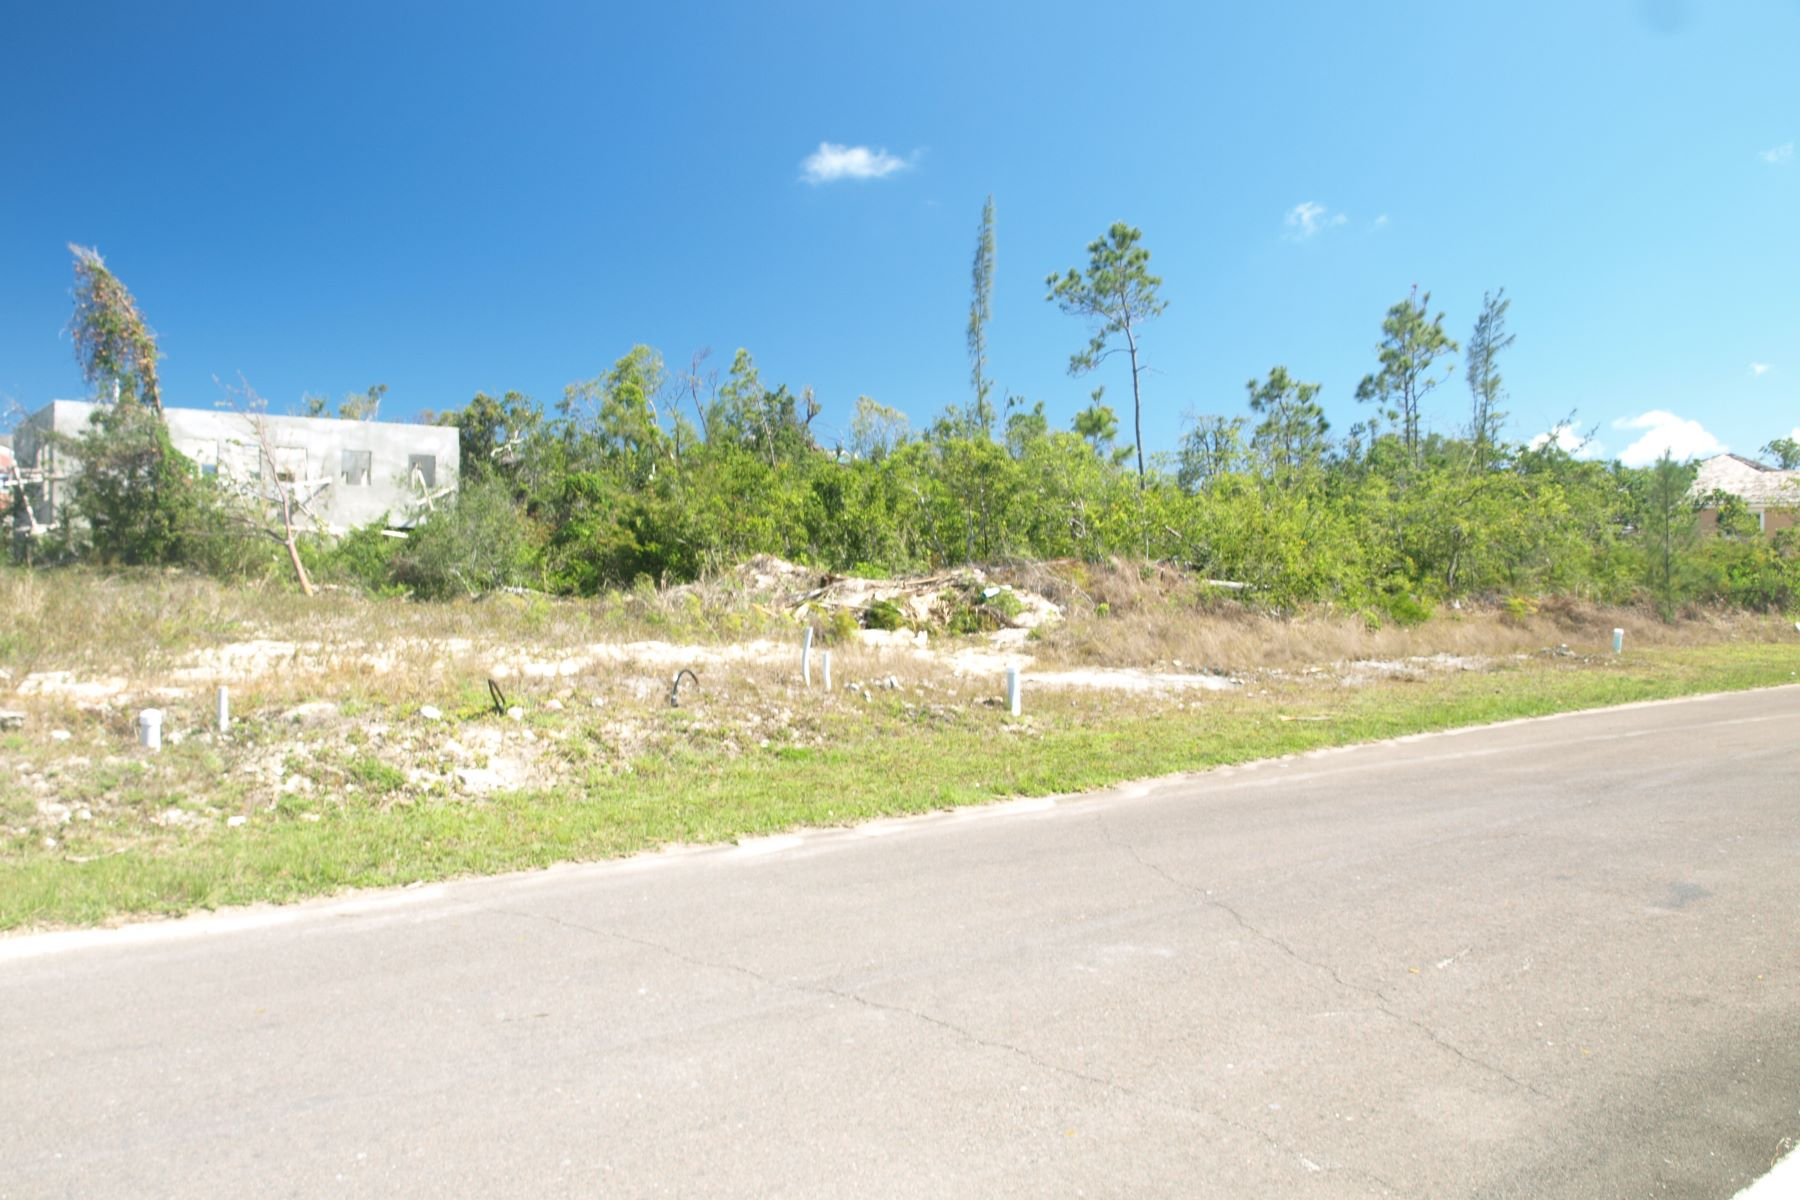 Land for Sale at Serenity Lot in Mount Pleasant Other Bahamas, Other Areas In The Bahamas Bahamas